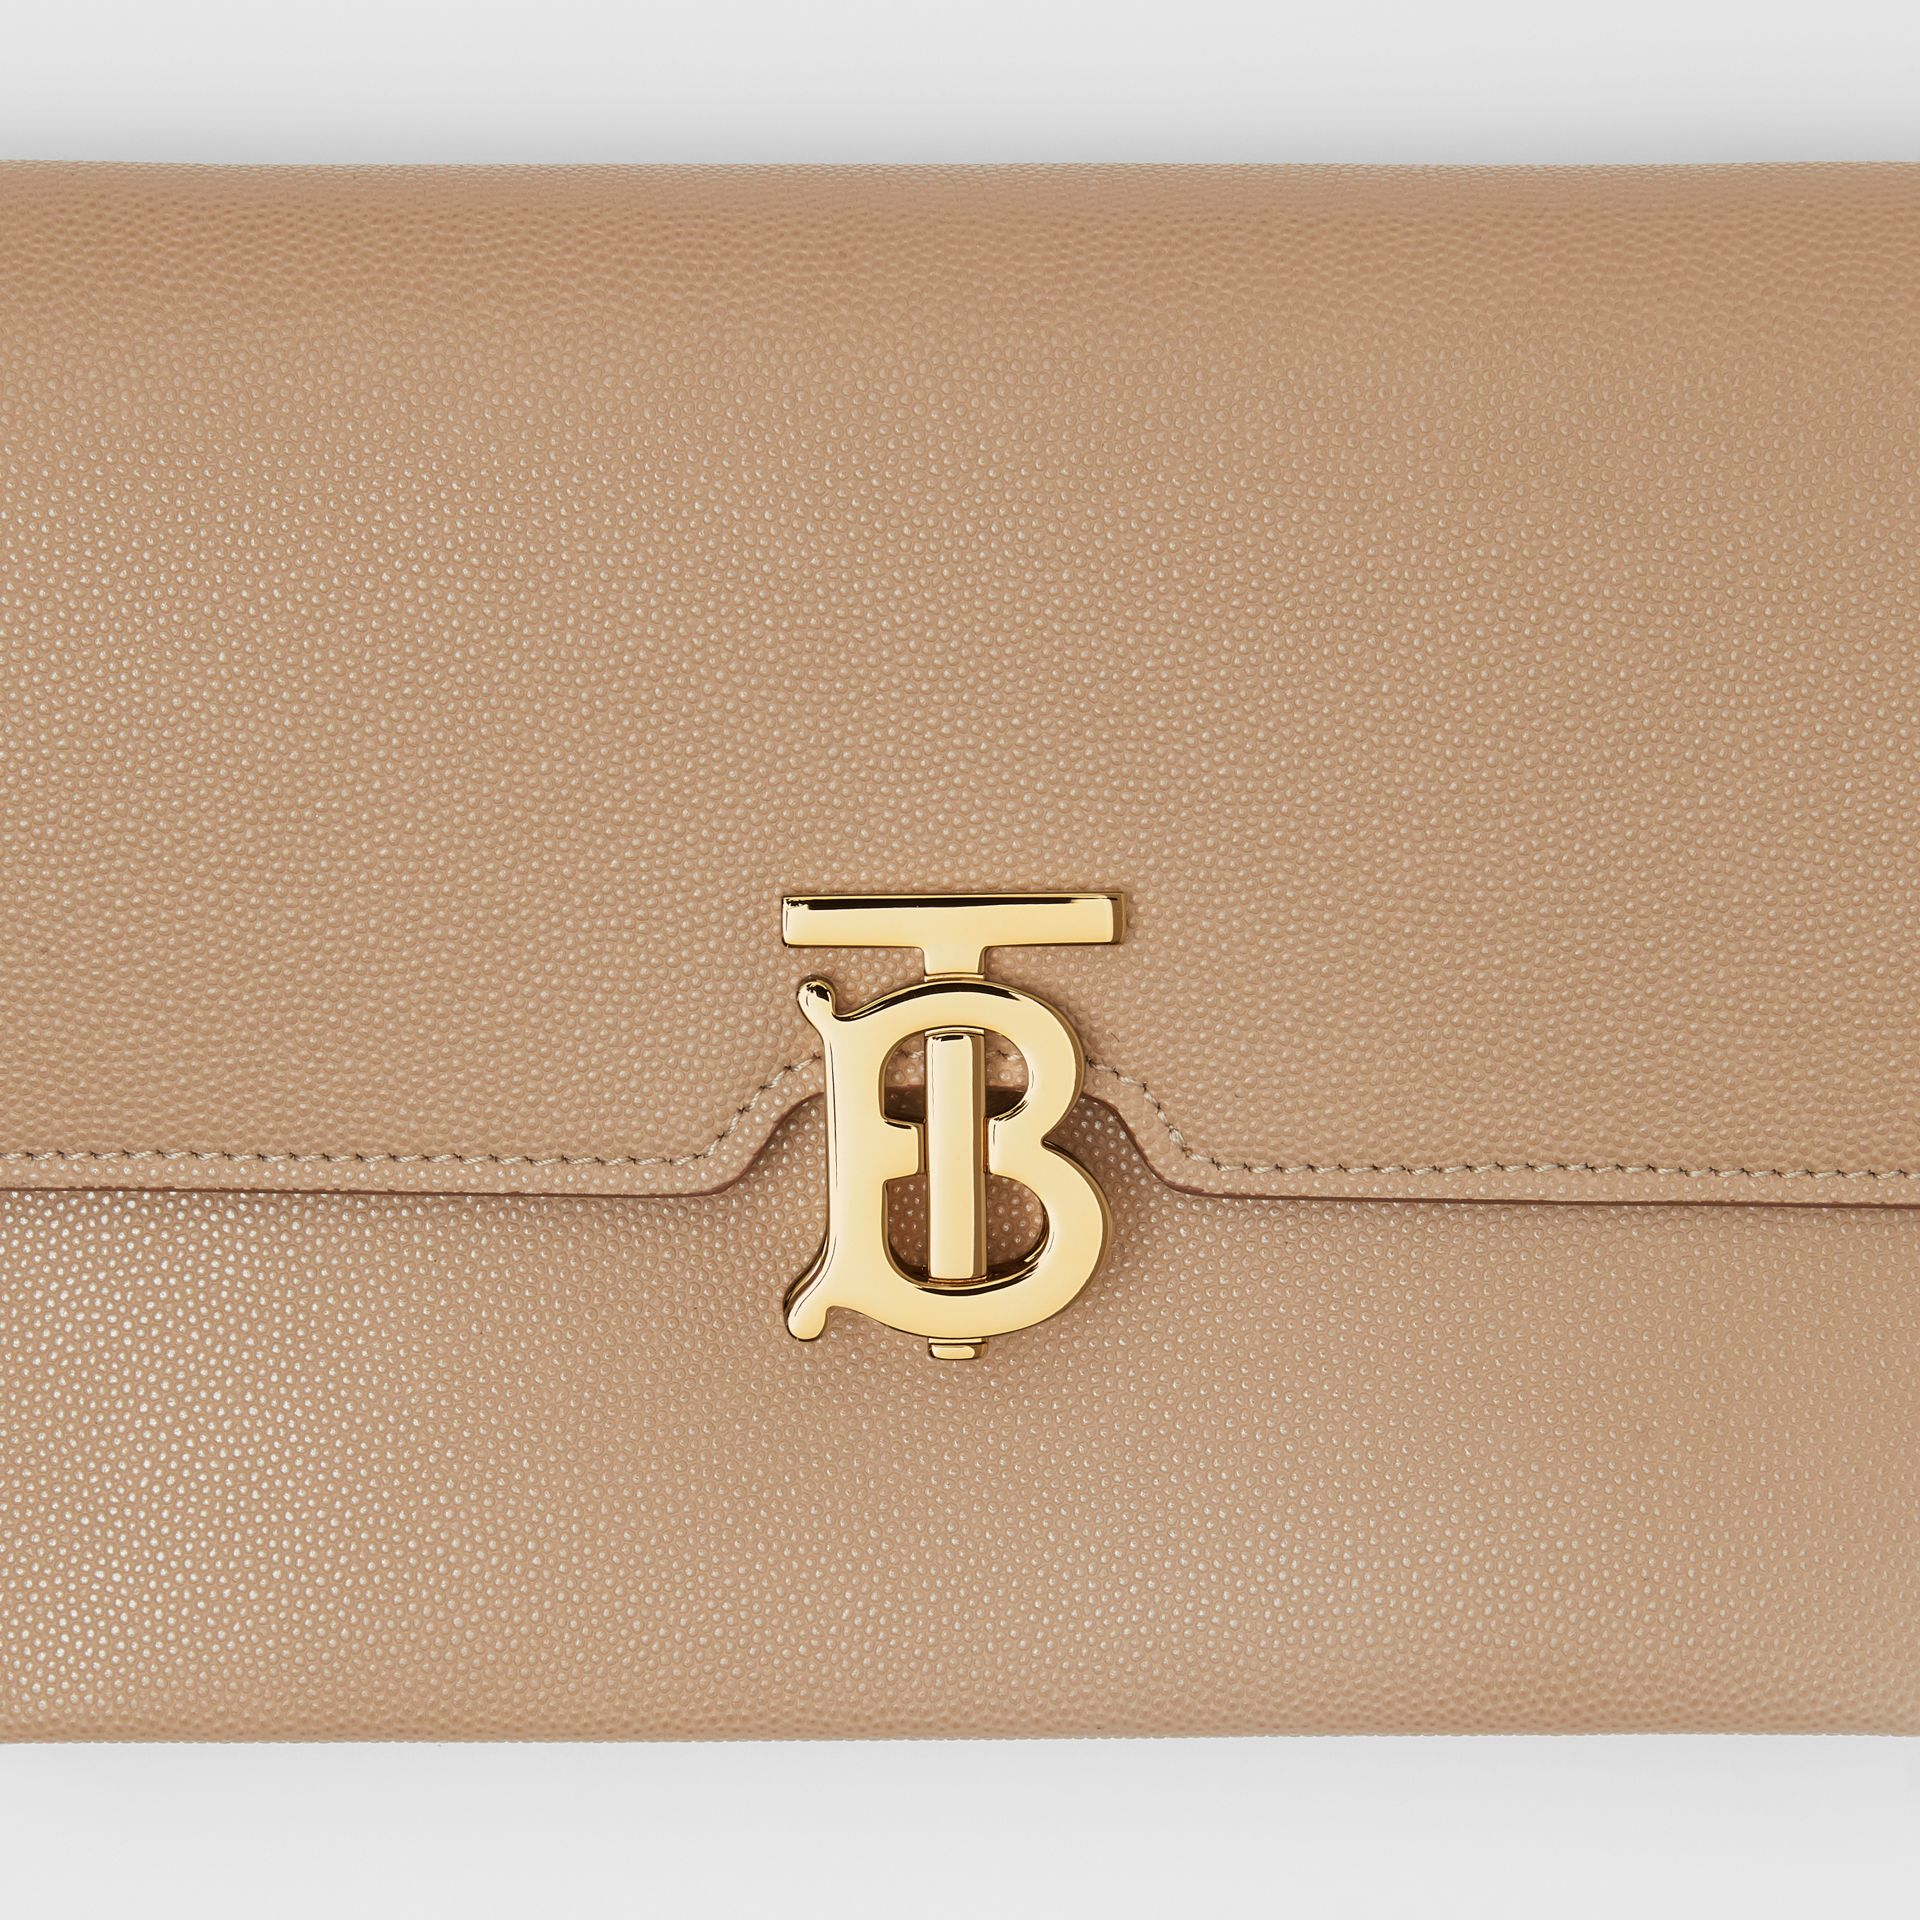 Small Monogram Motif Leather Crossbody Bag in Archive Beige - Women | Burberry Canada - gallery image 1